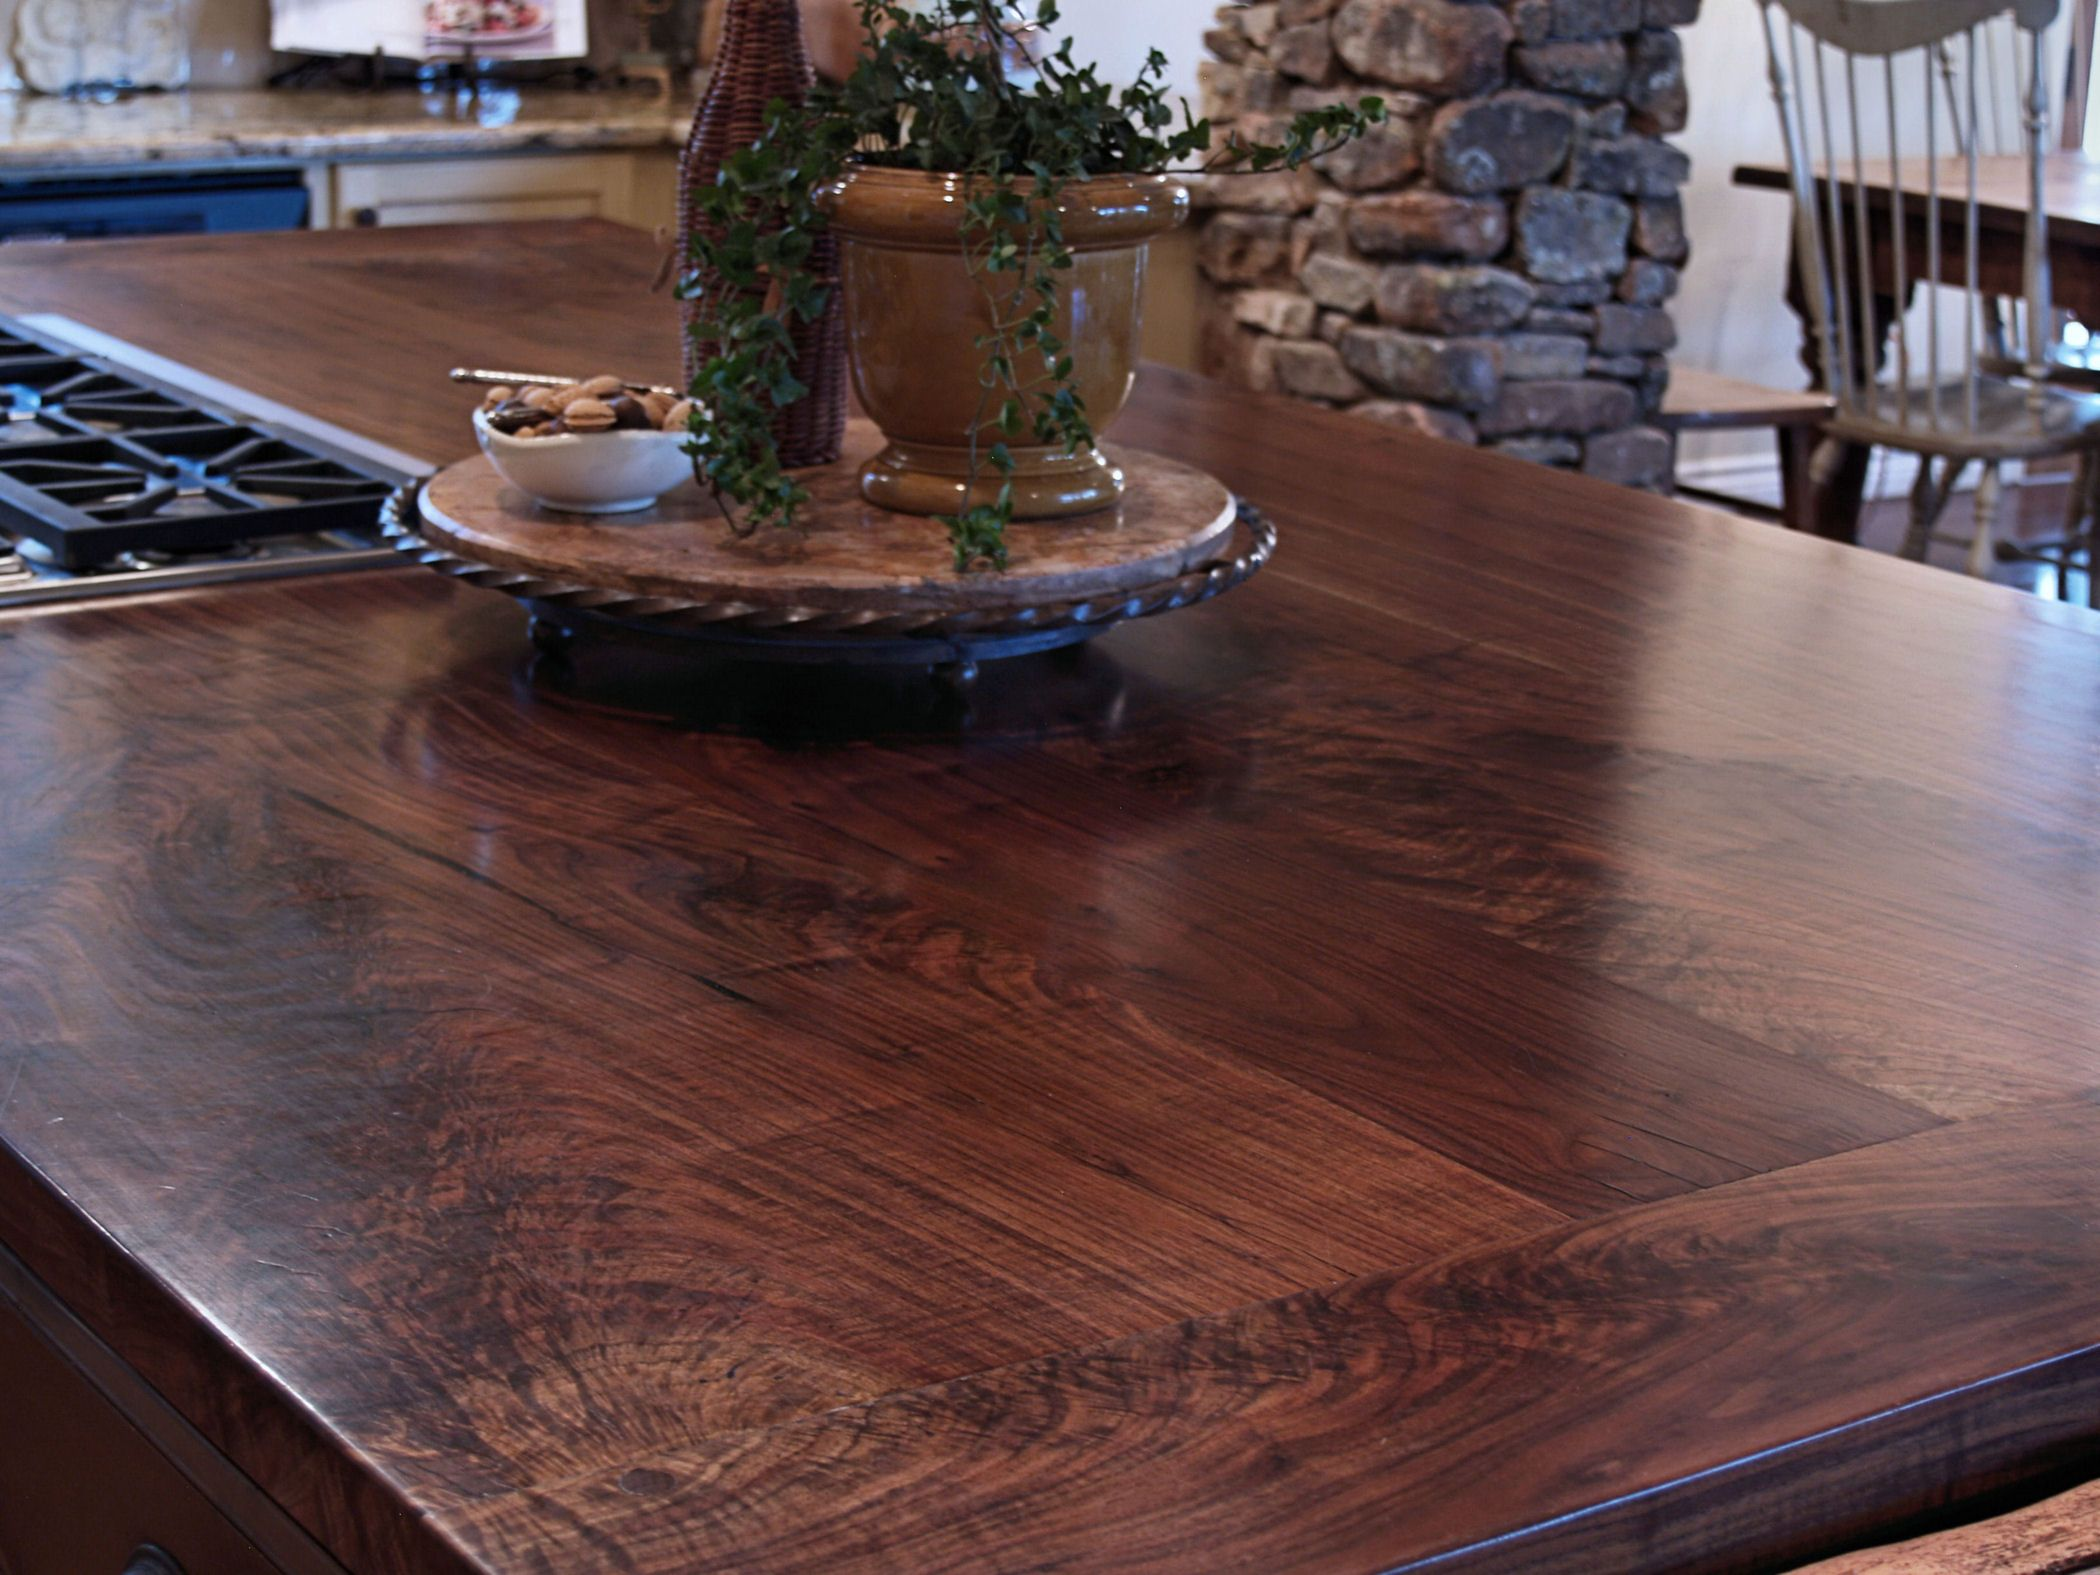 Waterproof Wood Countertop Slab Walnut Wood Countertop Photo Gallery By Devos Custom